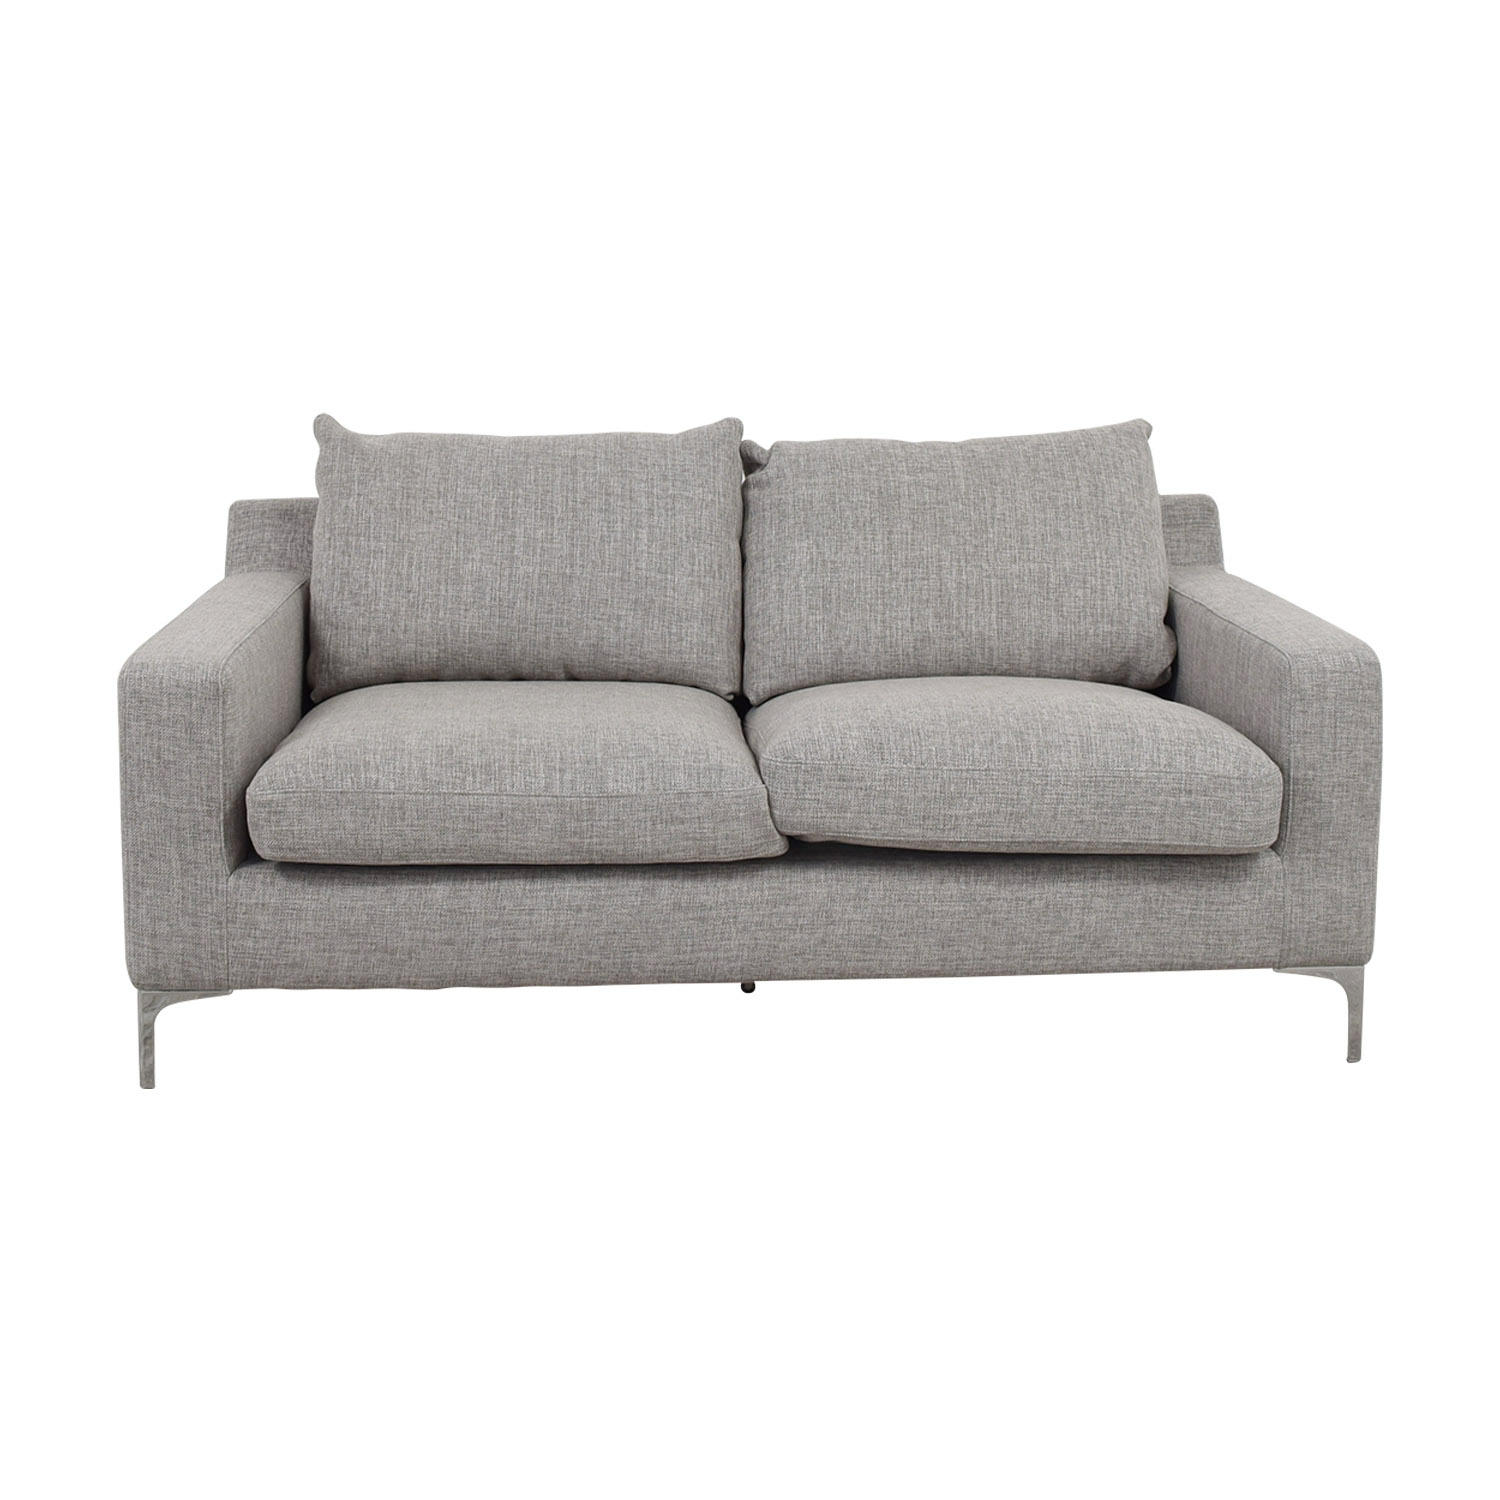 Sloan Grey Two Cushion Sofa Sofas